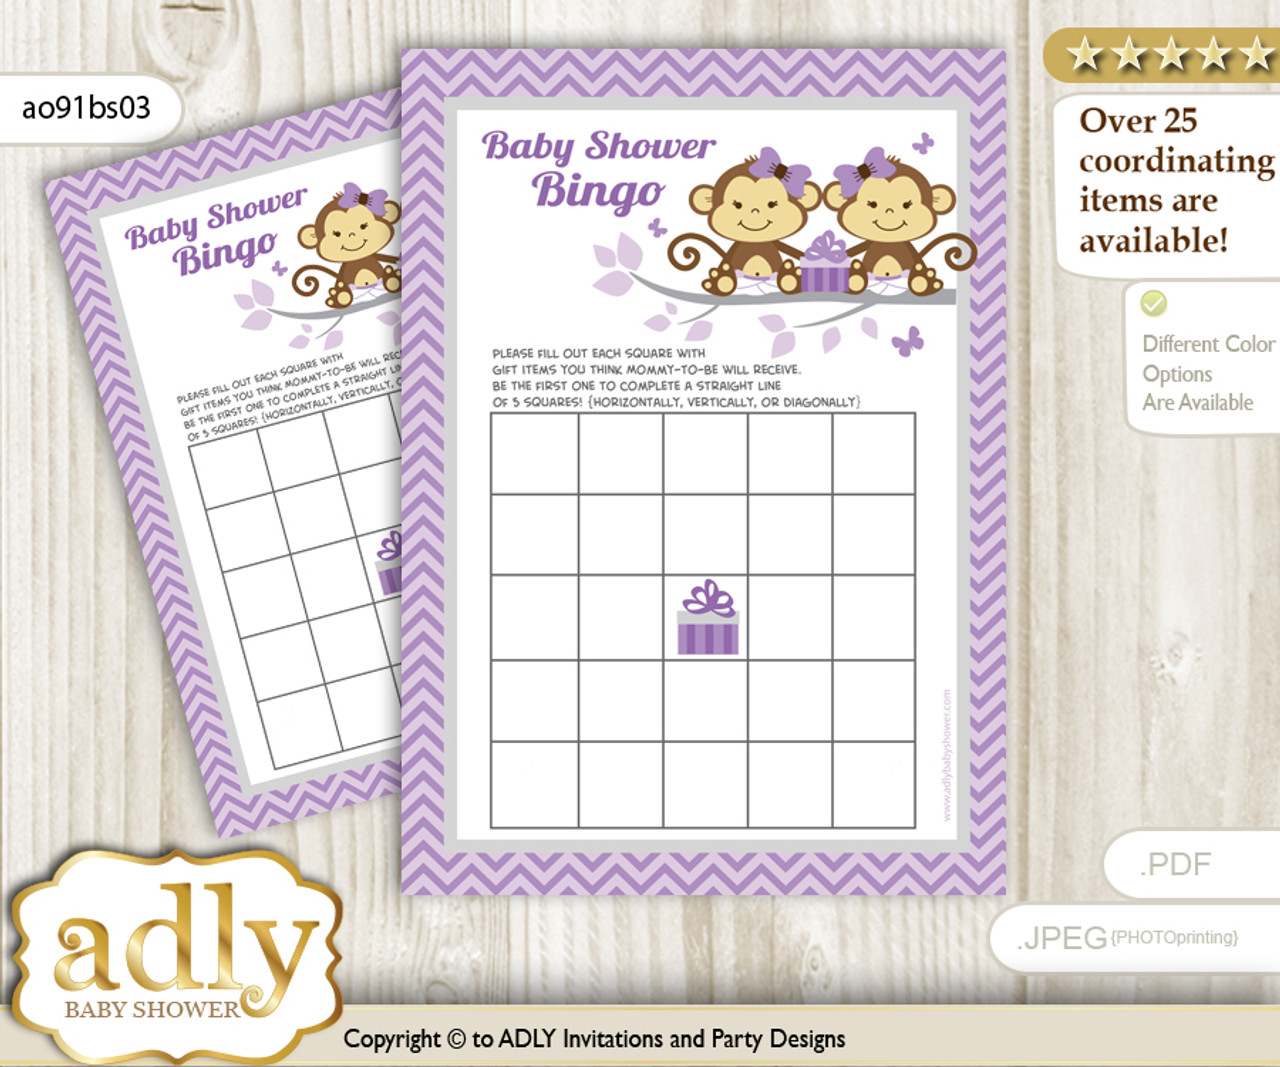 photo relating to Baby Shower Bingo Cards Printable referred to as Printable Lavender Monkey Bingo Sport Printable Card for Boy or girl Twins Shower Do it yourself gray, Lavender, Females